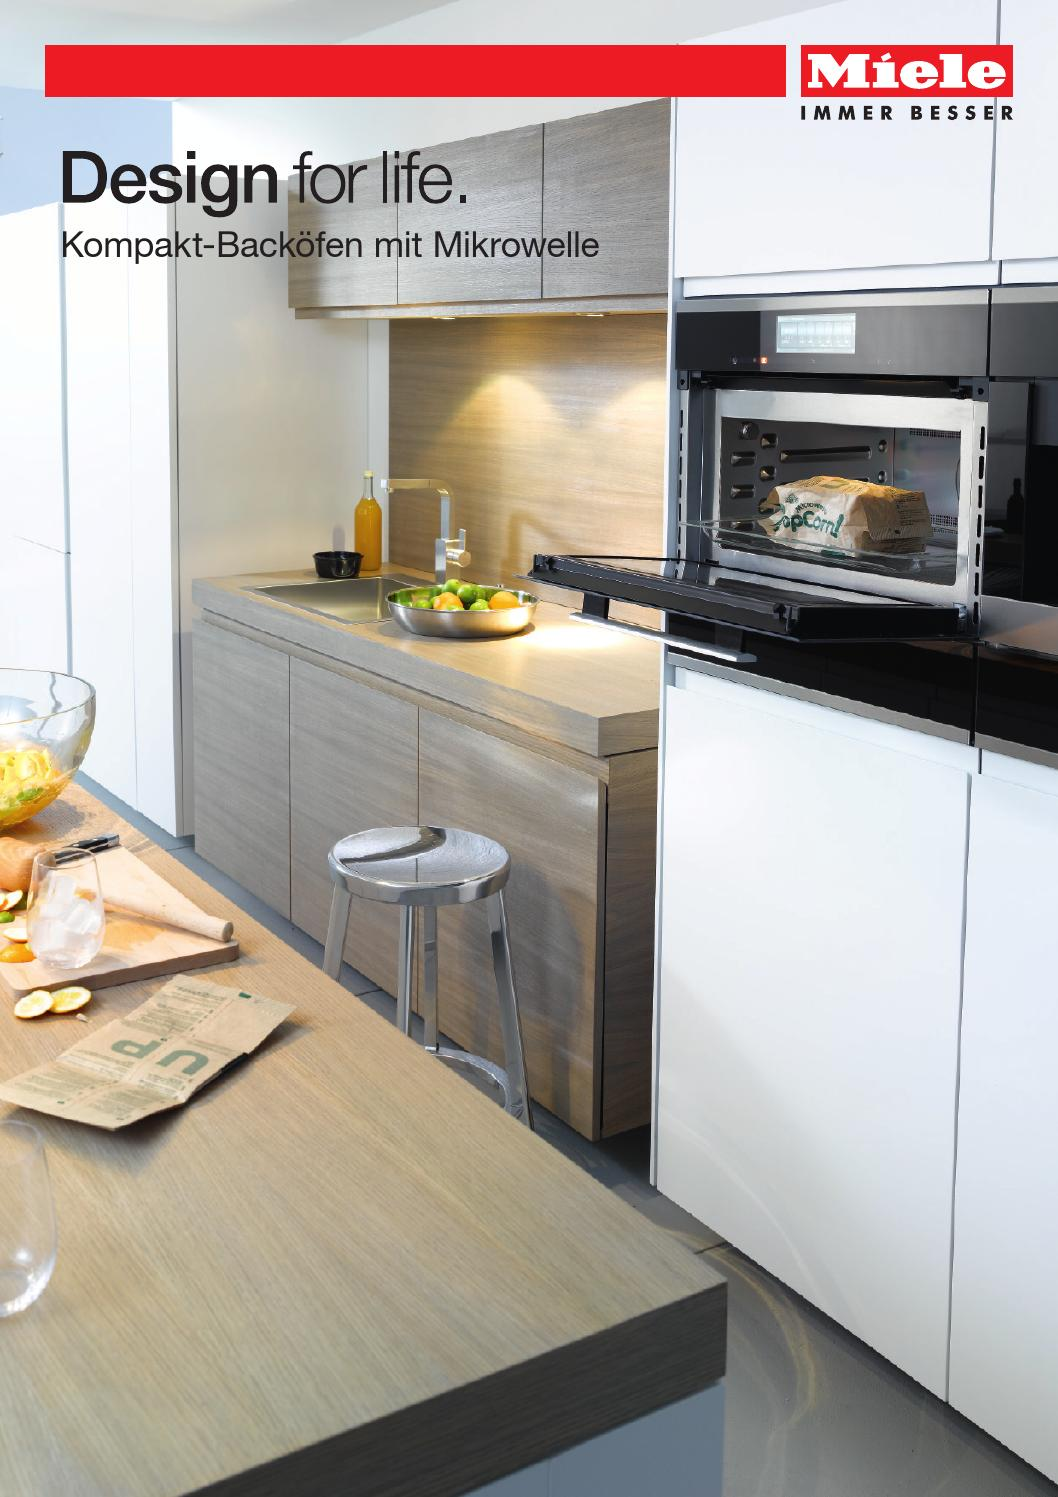 miele produktkatalog kompakt back fen mit mikrowelle ch de by miele issuu. Black Bedroom Furniture Sets. Home Design Ideas